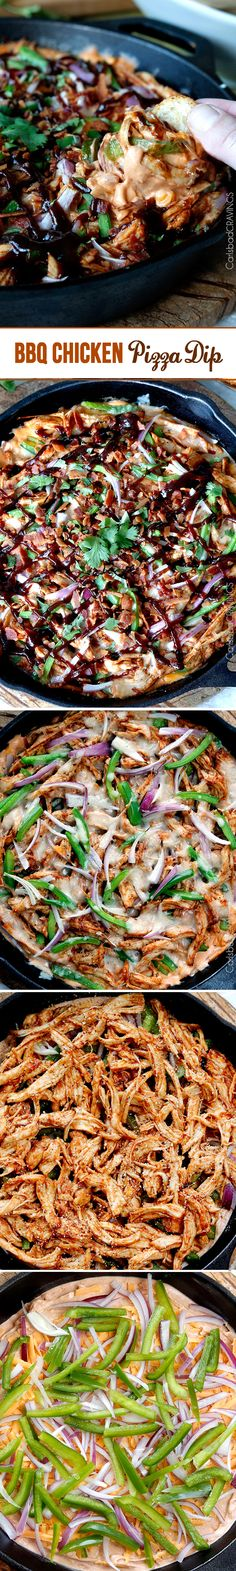 Perfect for New Years! BBQ Chicken Pizza Dip - cheesy BBQ cream cheese with layers of BBQ chicken, red onions, bell peppers and red onion - all the flavors of the pizza but in a dip!